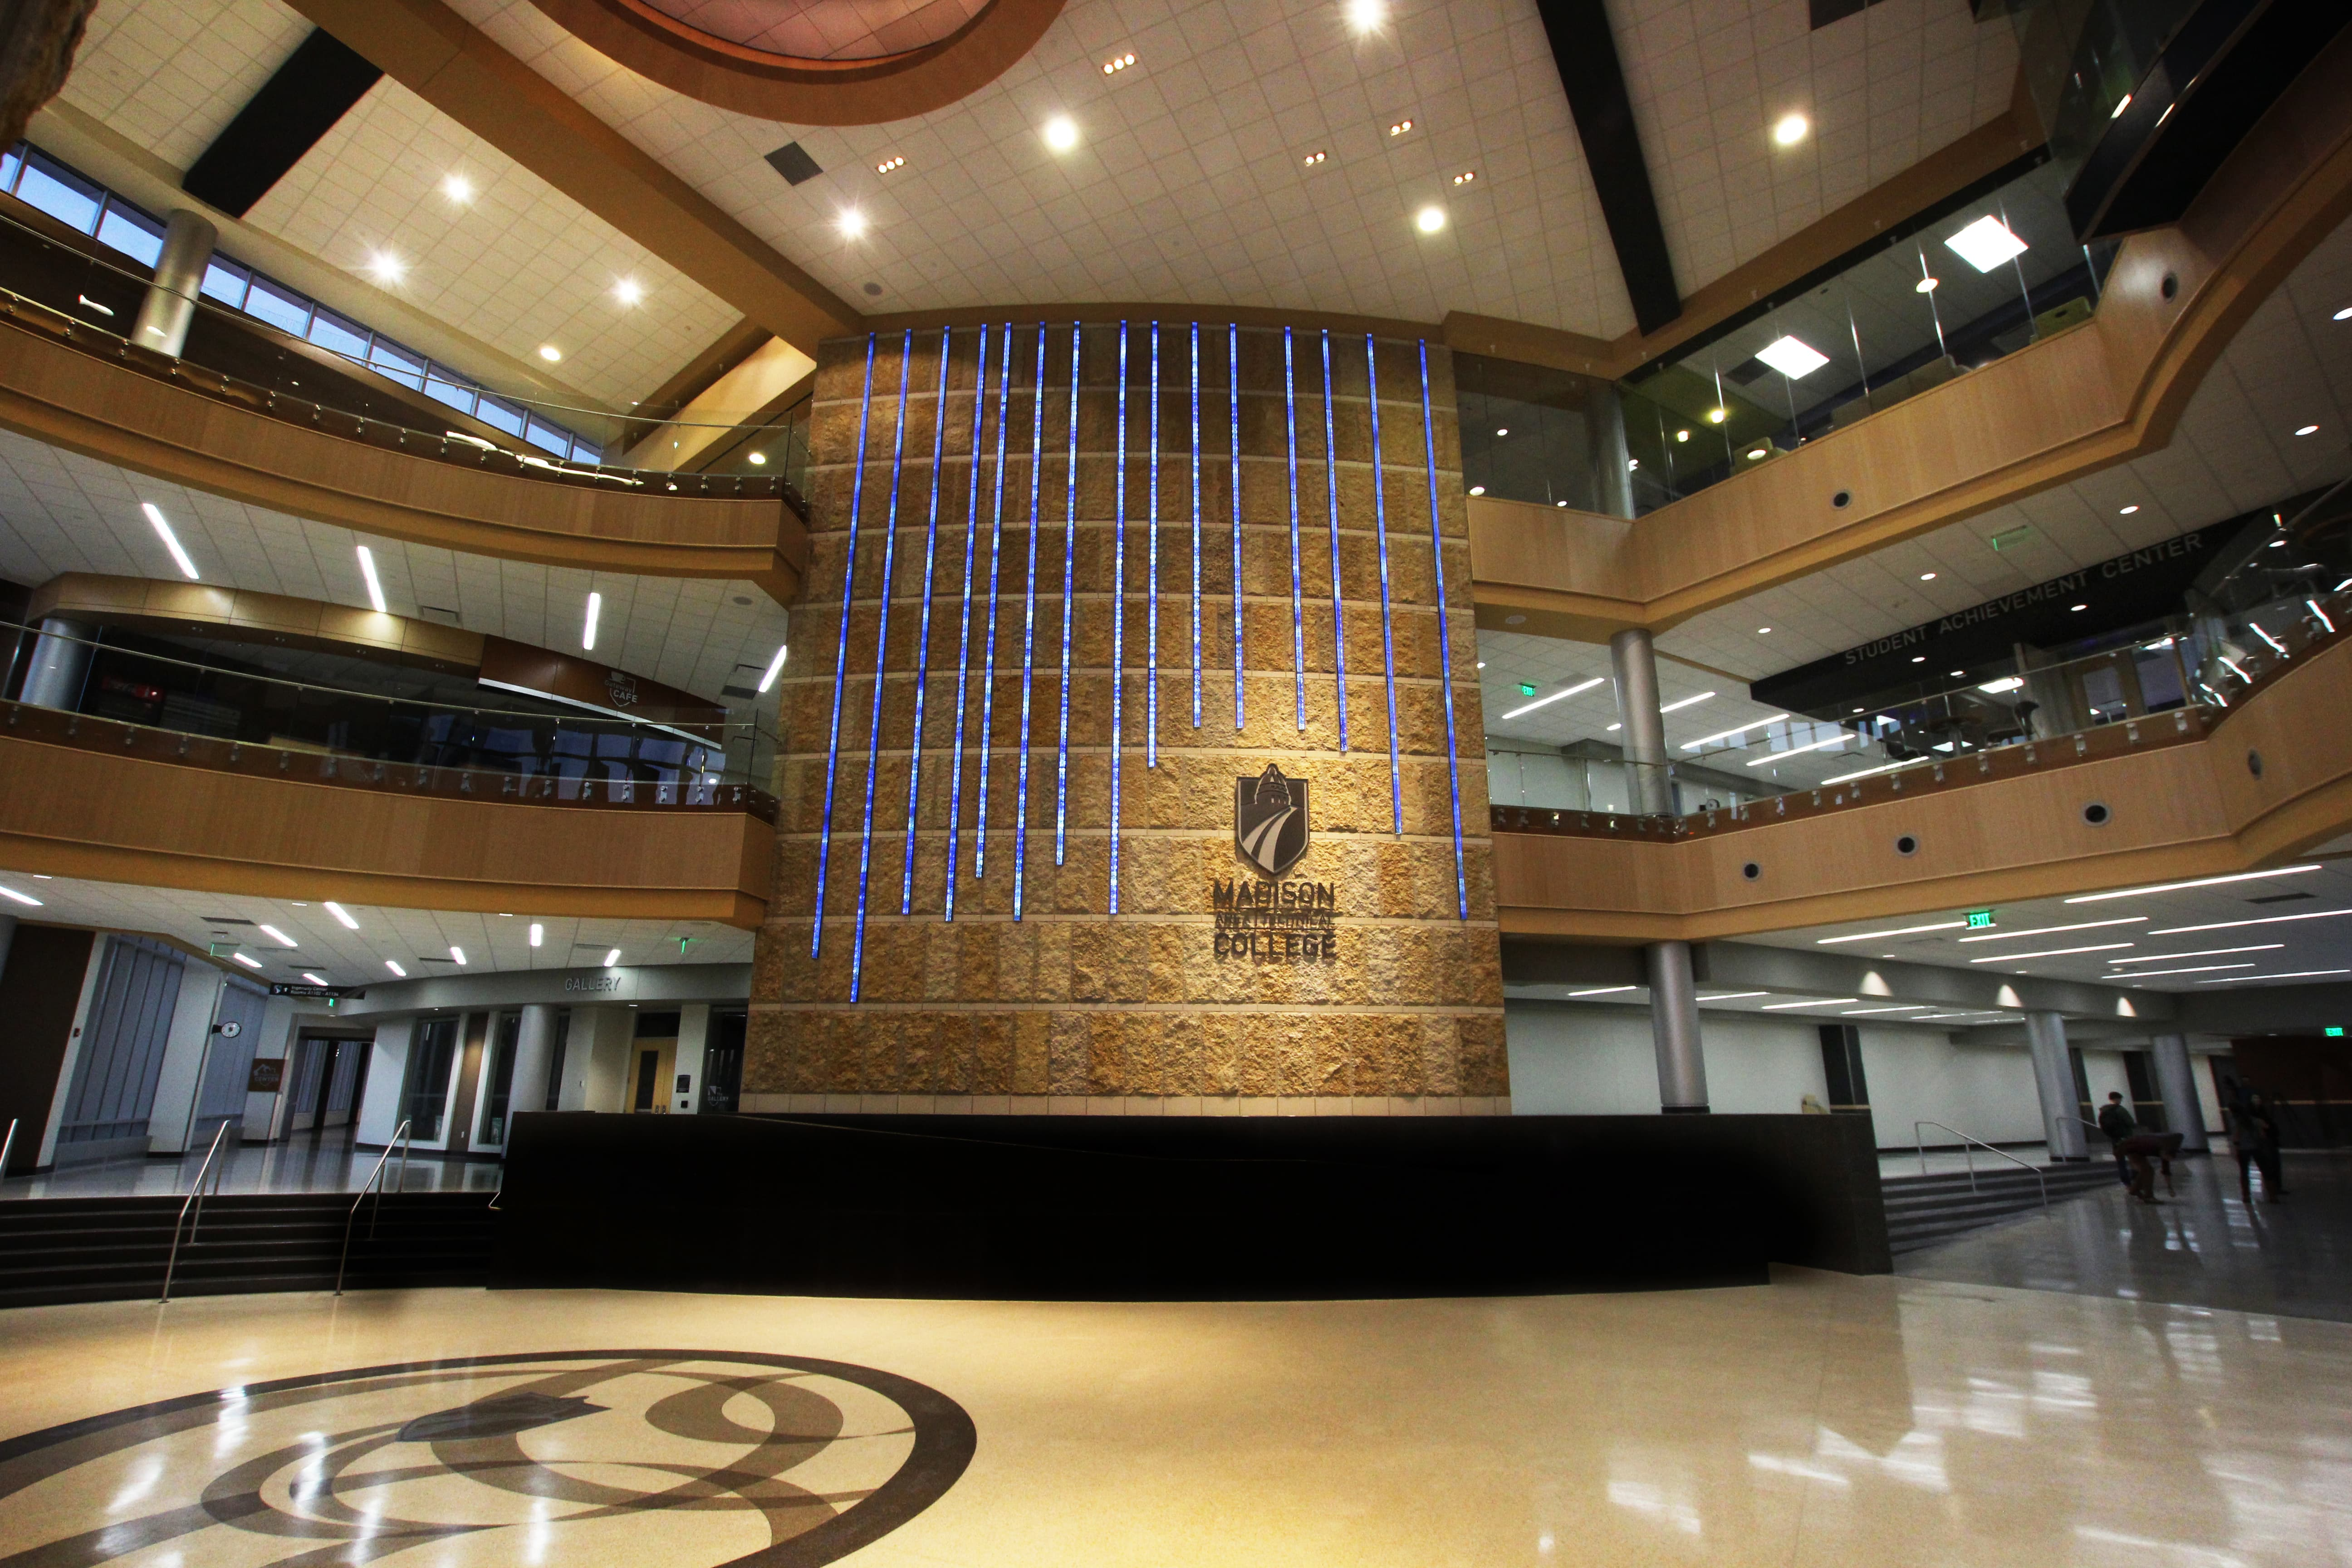 Digital waterfall in the main entry of Madison College